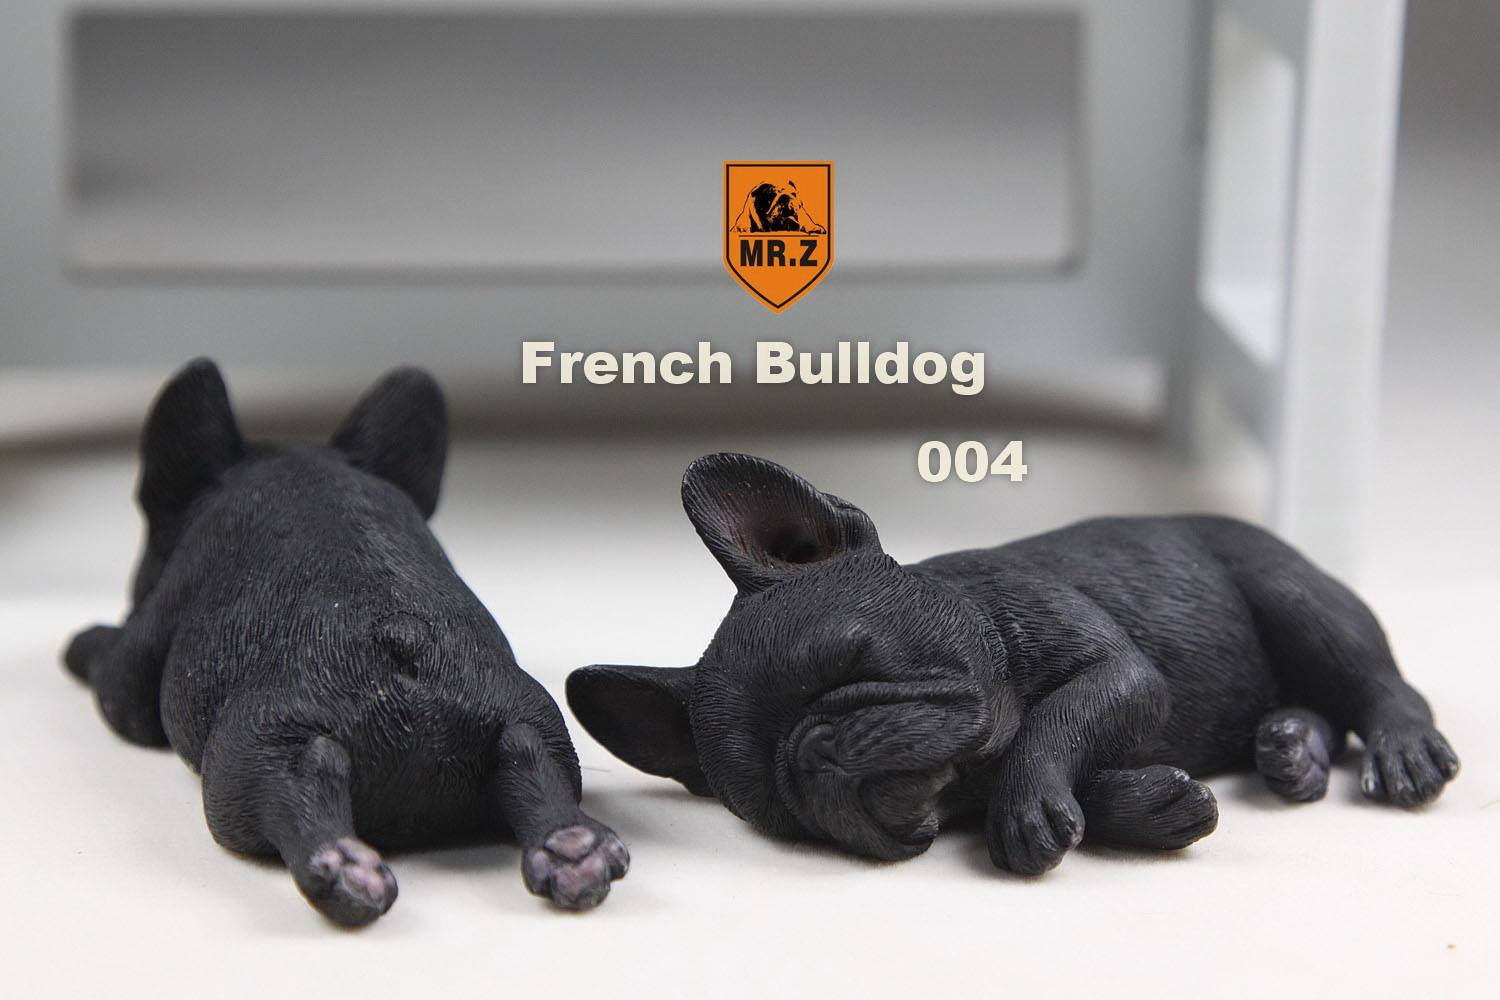 MR.Z - Real Animal Series No.9 - 1/6th Scale French Bulldog (Sleep Mode) 001-005 - Marvelous Toys - 18